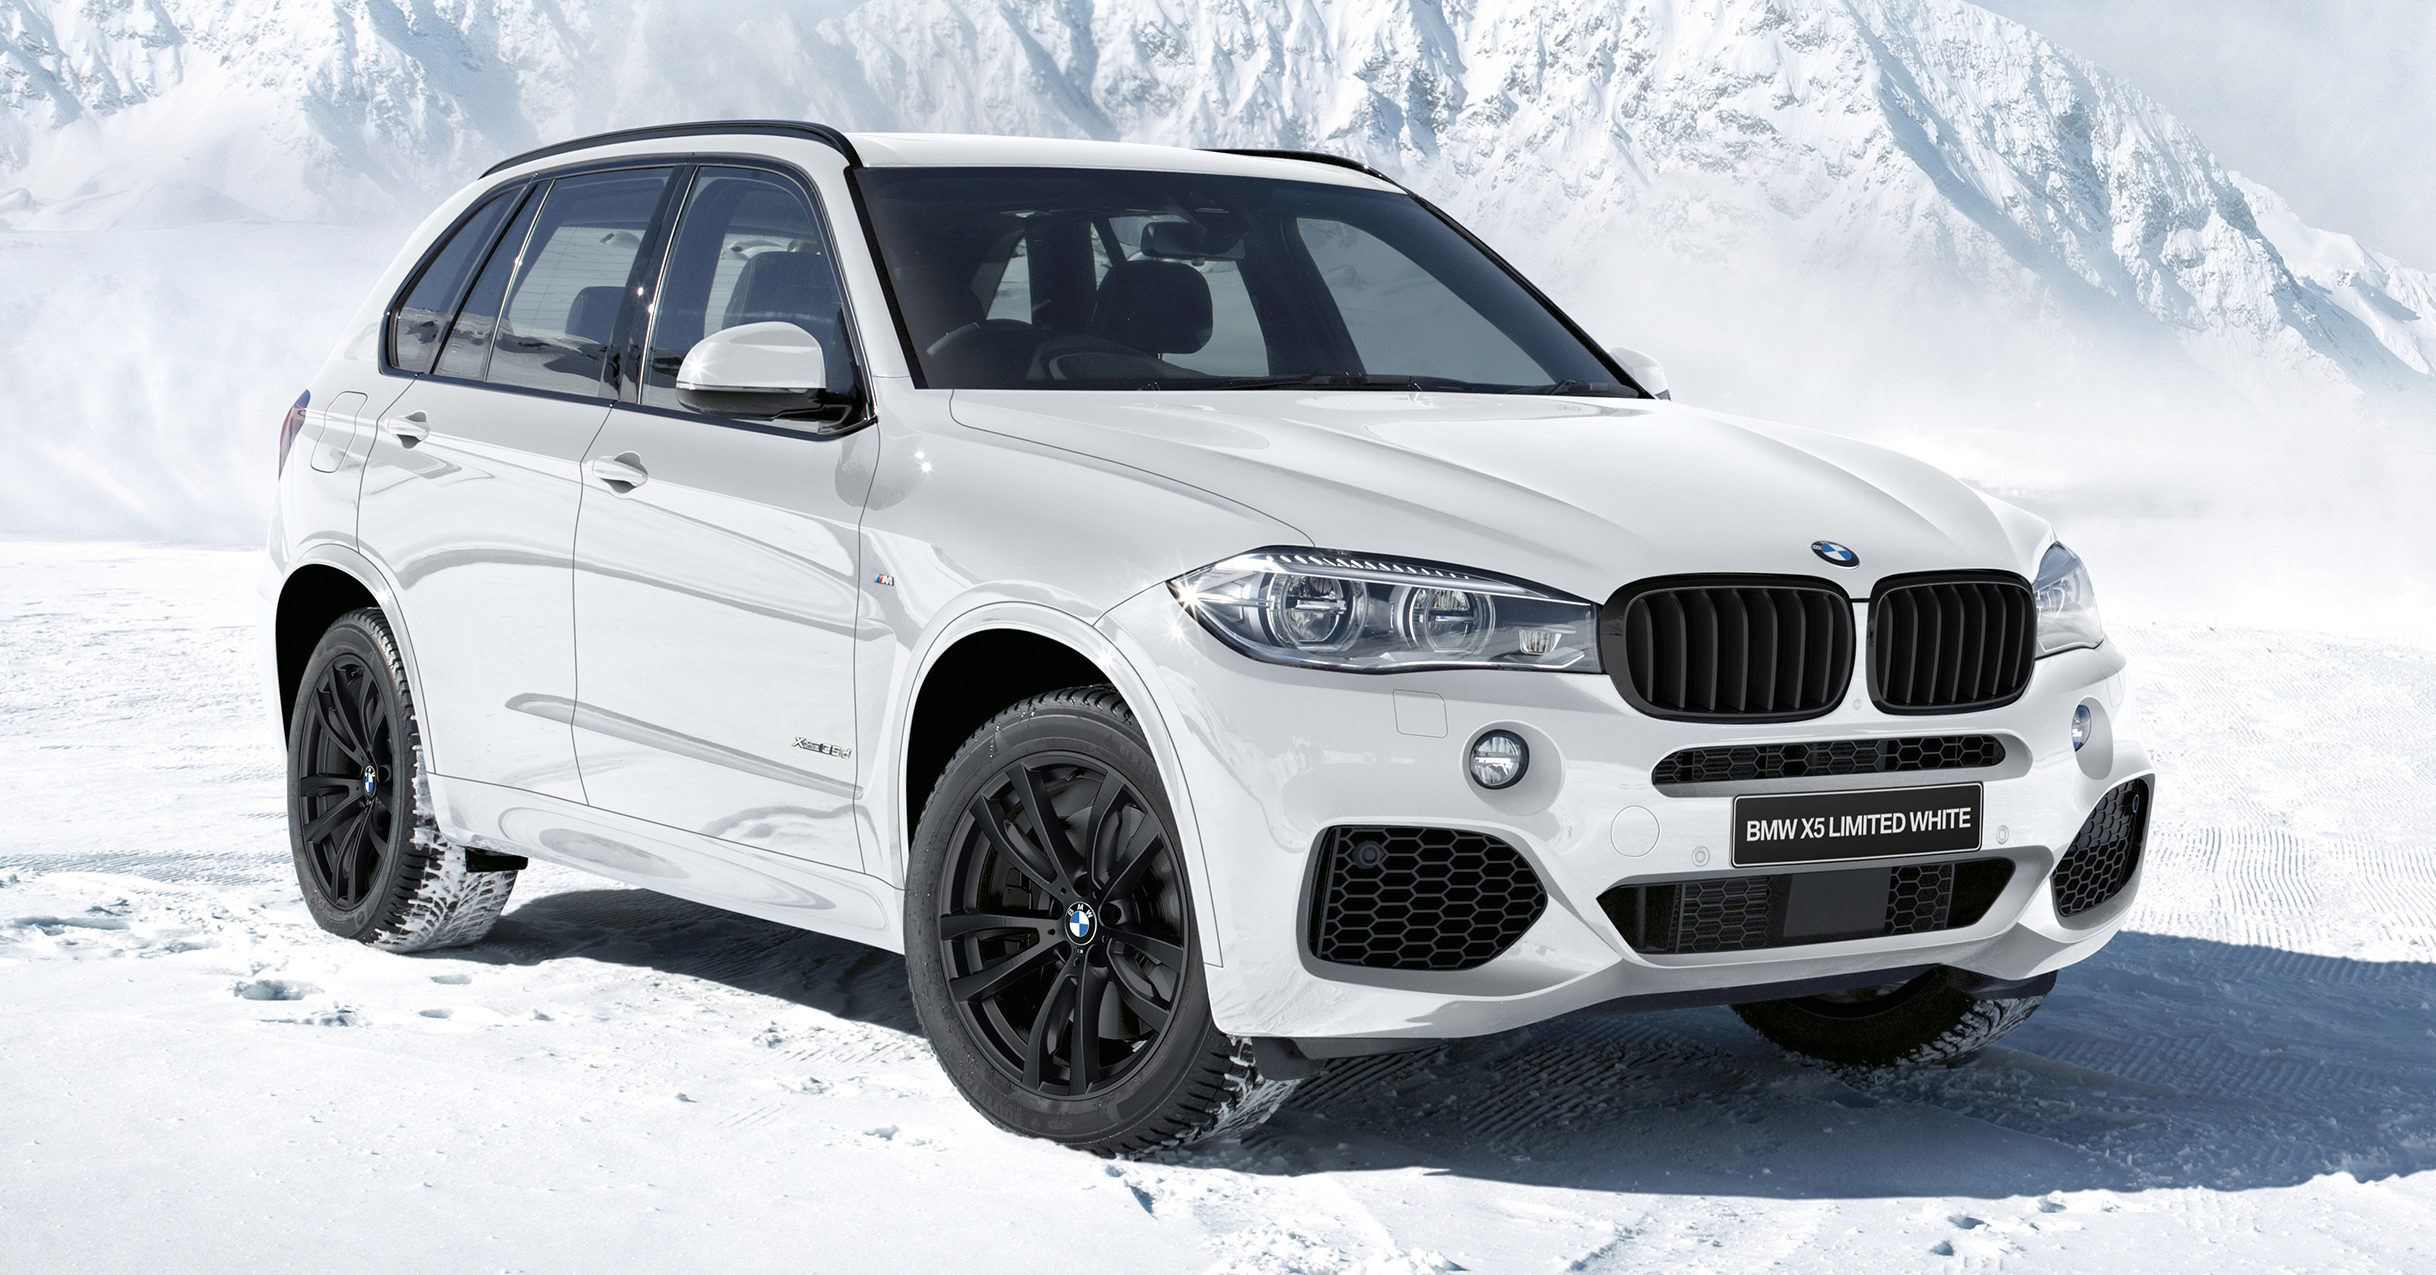 F15 Bmw X5 Limited Black White Editions For Japan Paultan Org